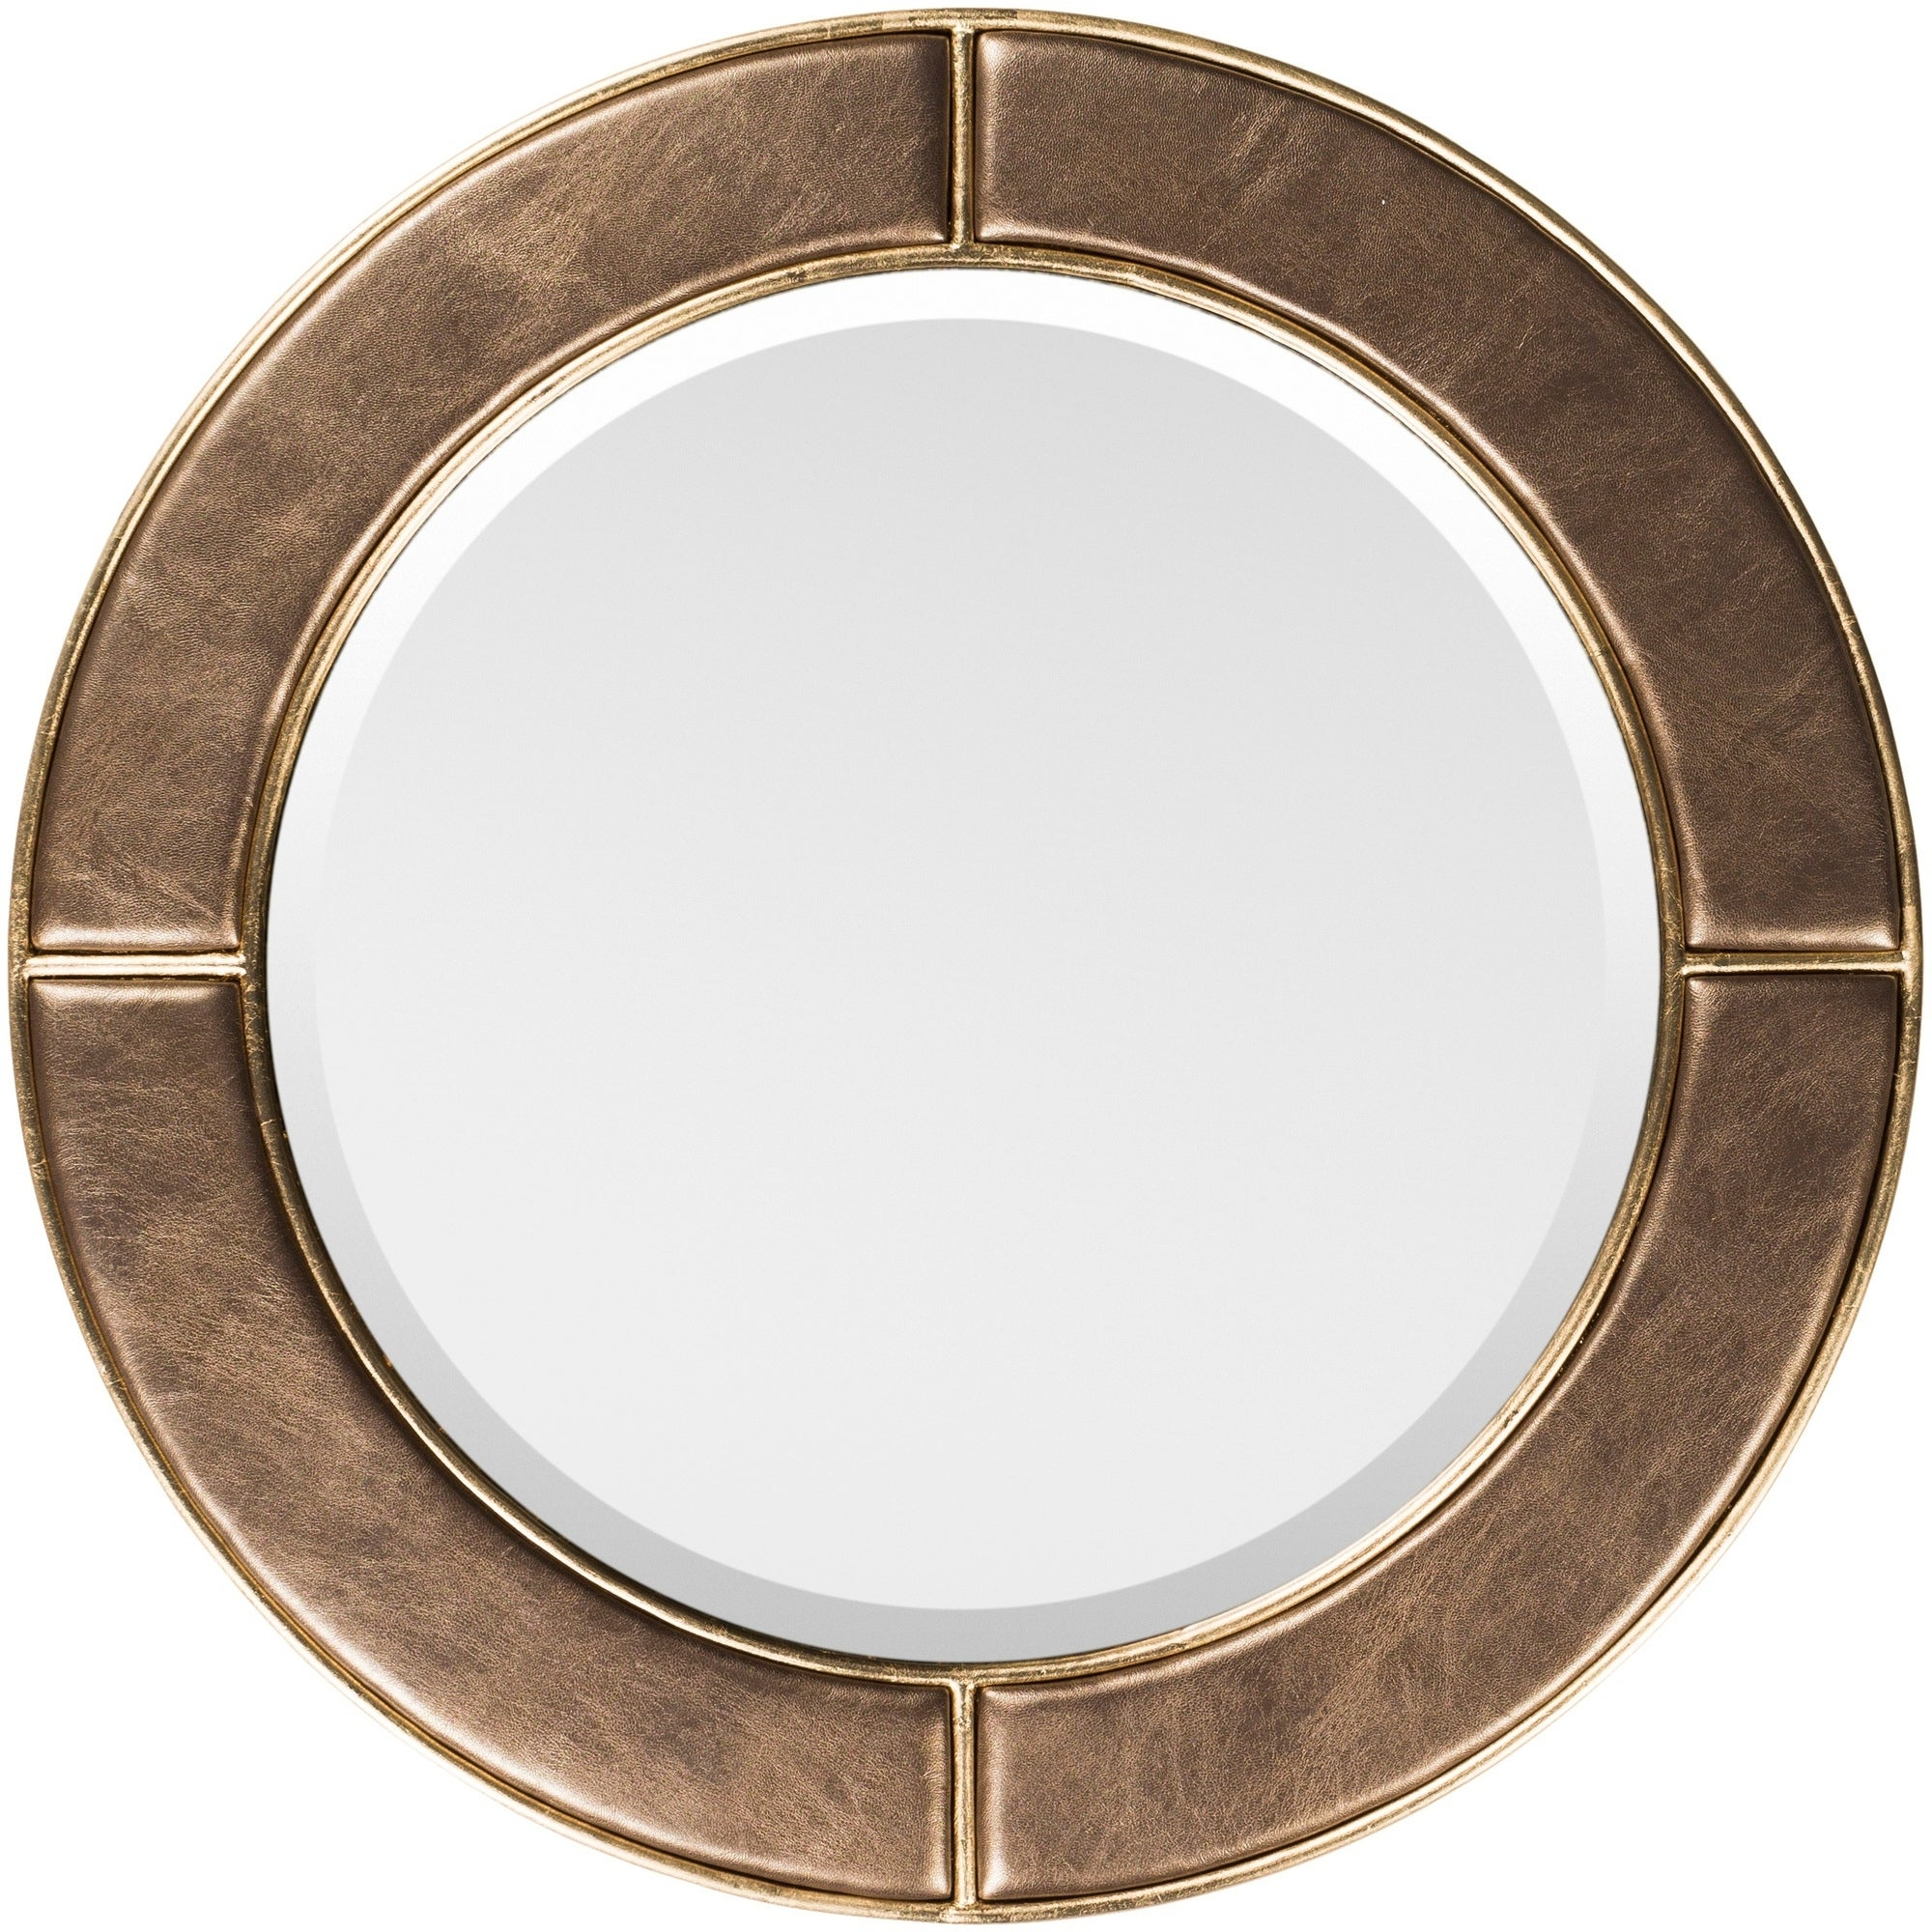 "Leather Framed Wall Mirrors For Best And Newest Lazaros Bronze Faux Leather Framed 32"" X 32"" Beveled Wall Mirror – 31.9"" X 31.9"" (Gallery 20 of 20)"